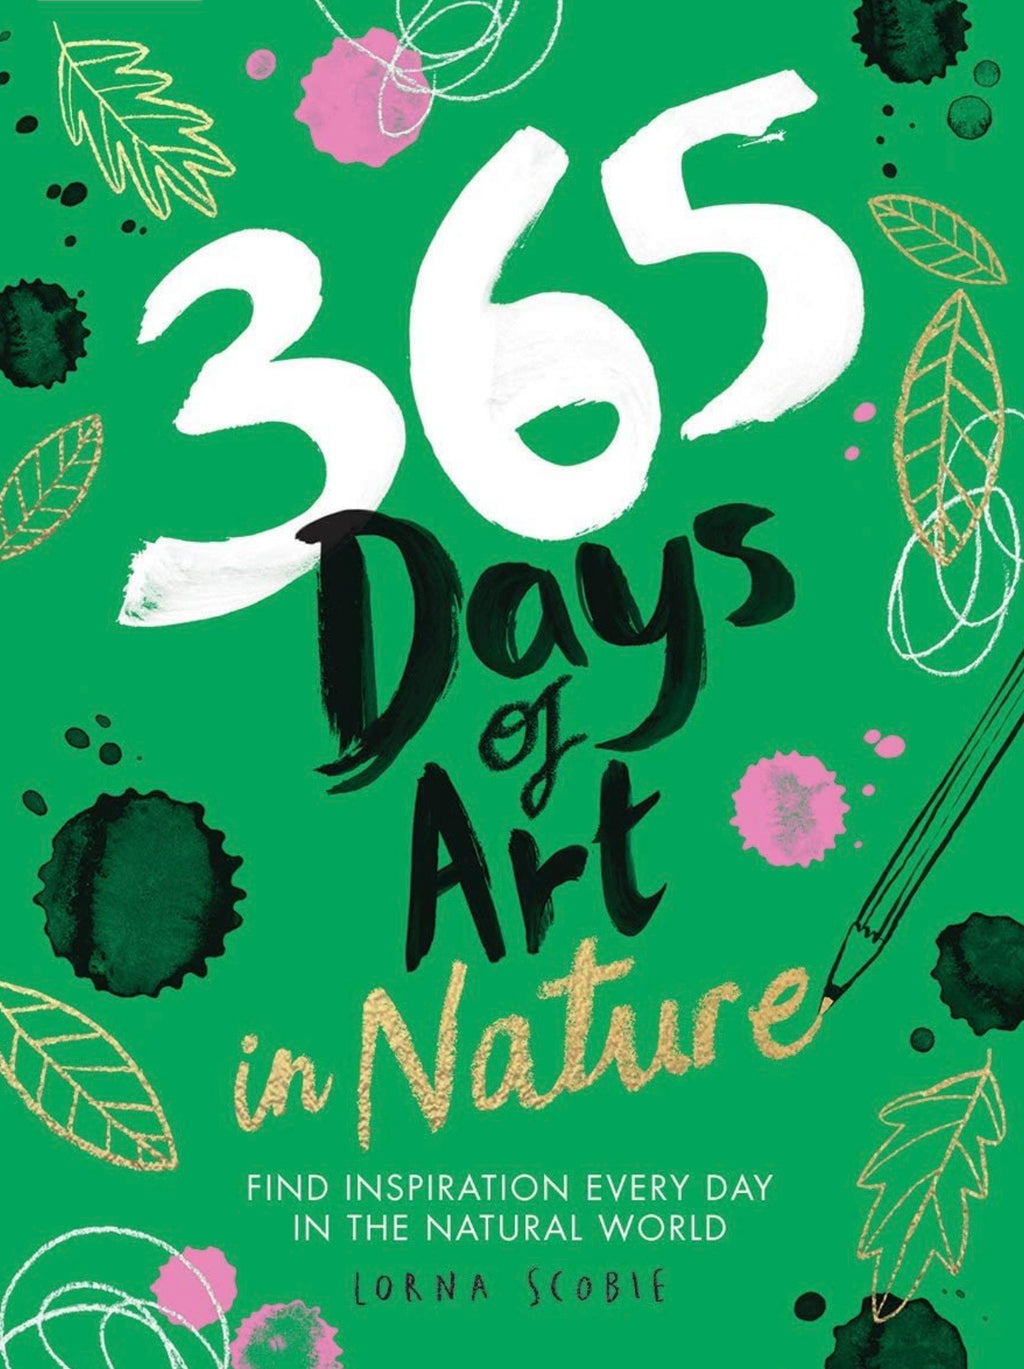 365 Days of Art Nature